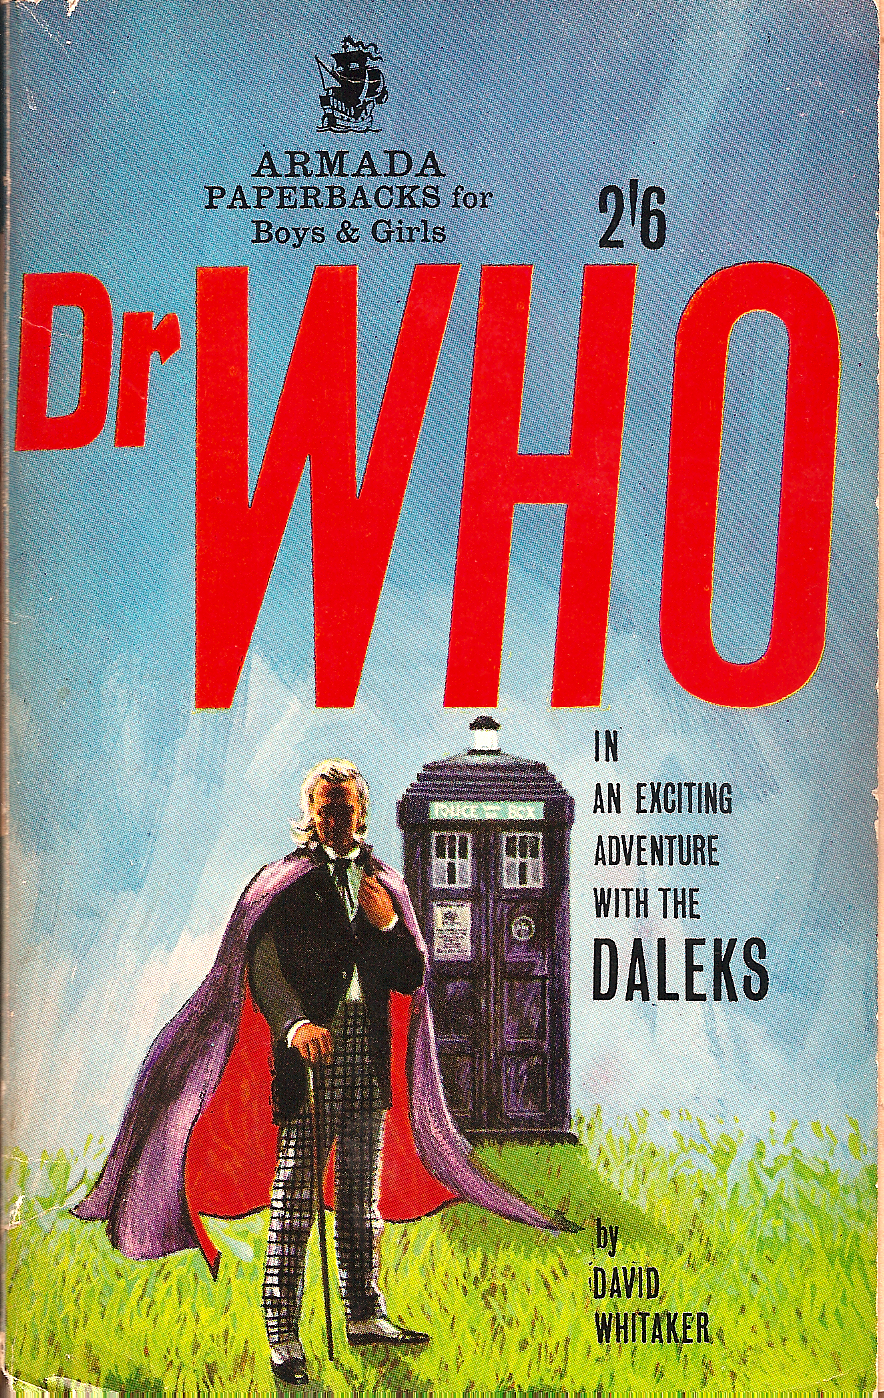 Most Beautiful Book Covers Ever : Dolly image the most beautiful doctor who book